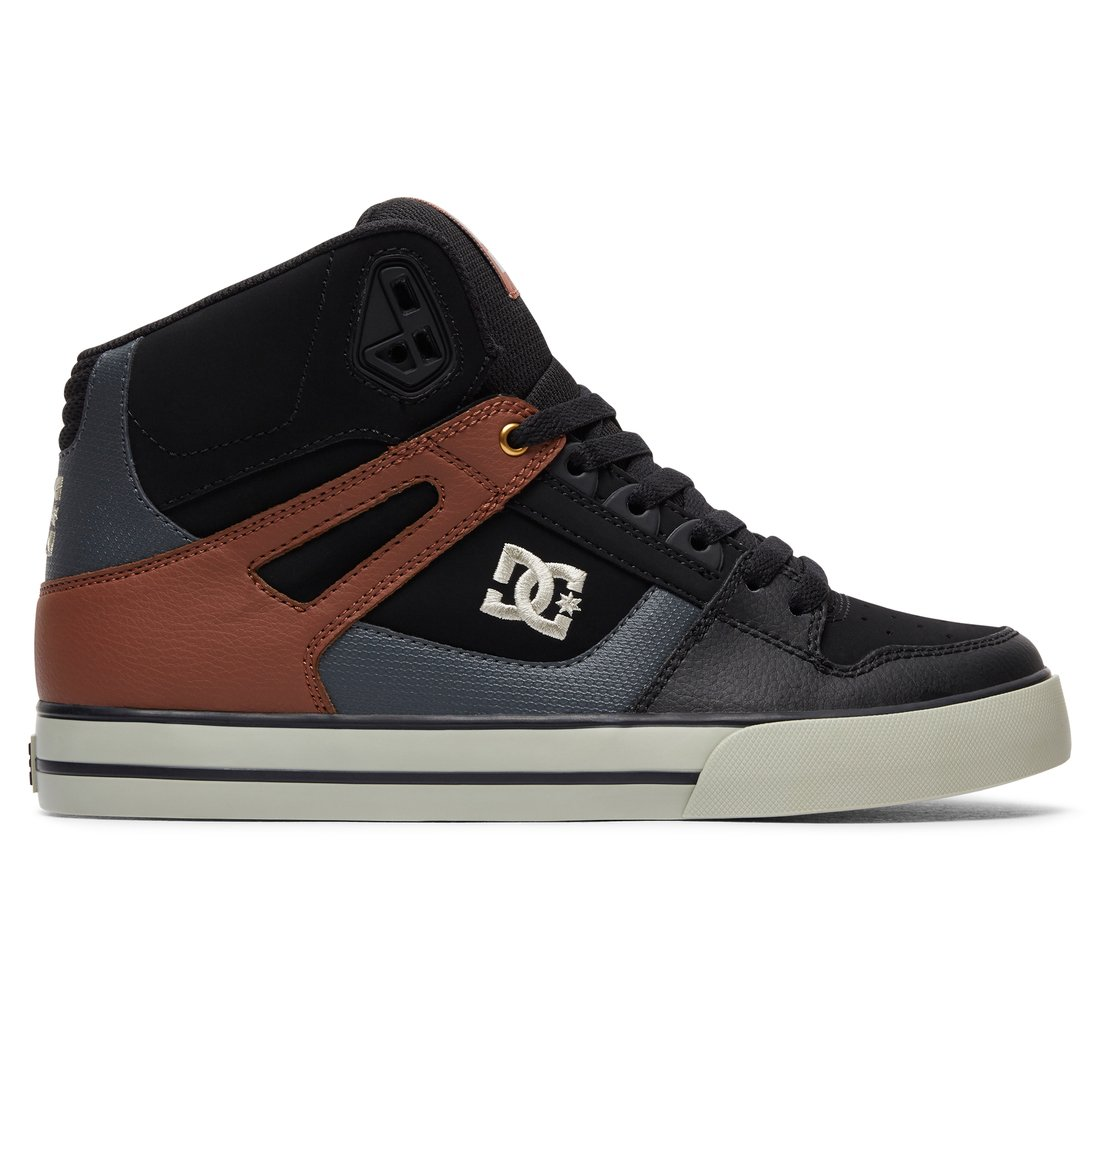 DC DCSpartan Hi WC Se - High Hombre, Color, Talla 40 EU